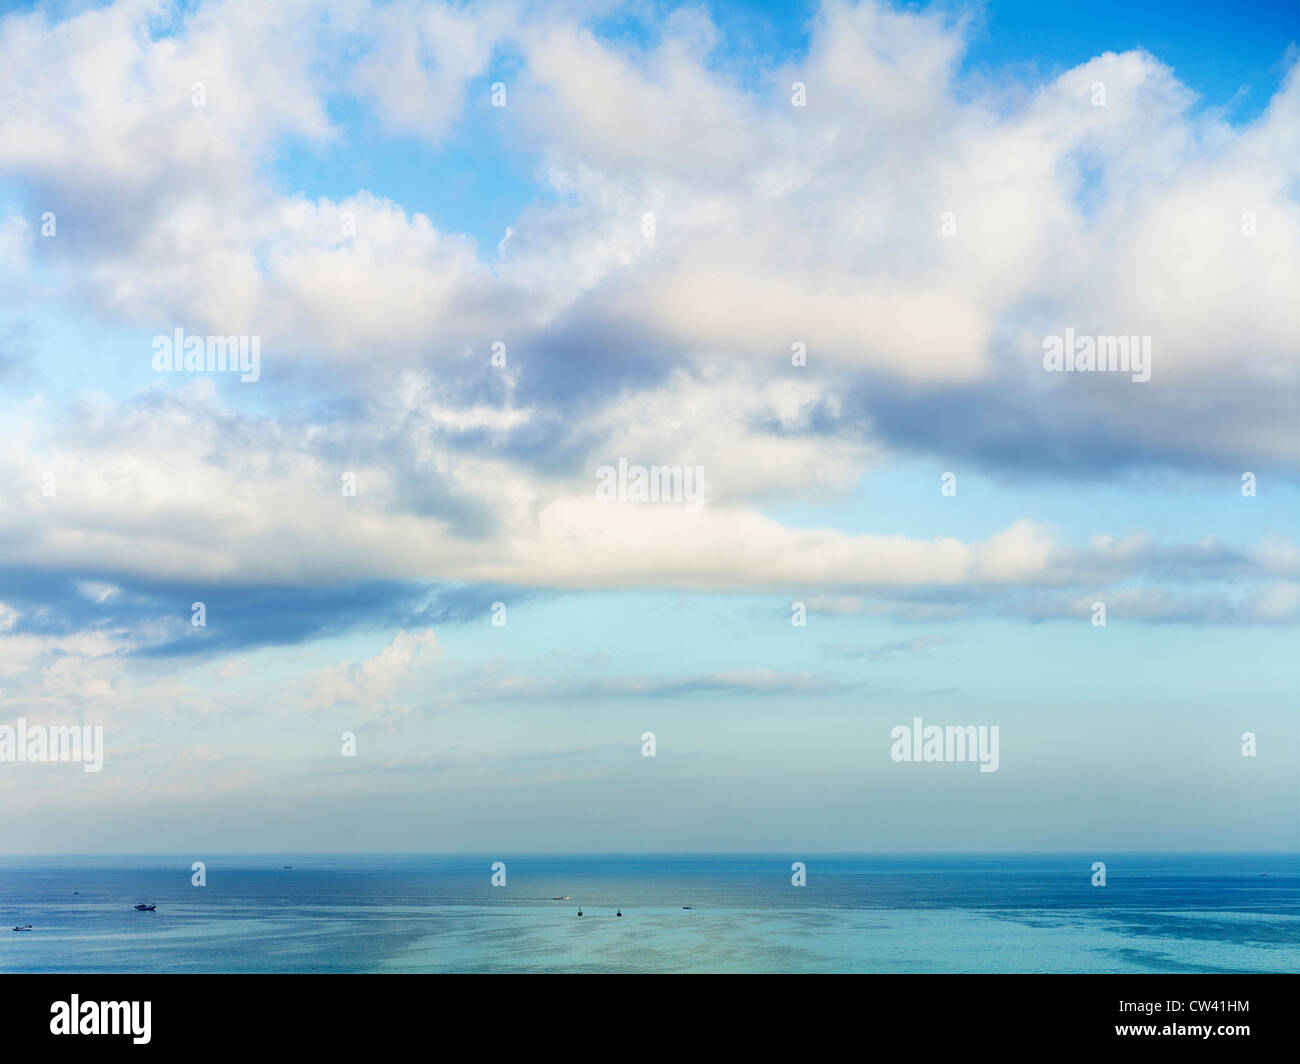 Fluffy clouds over the ocean in Bali, Indonesia. - Stock Image